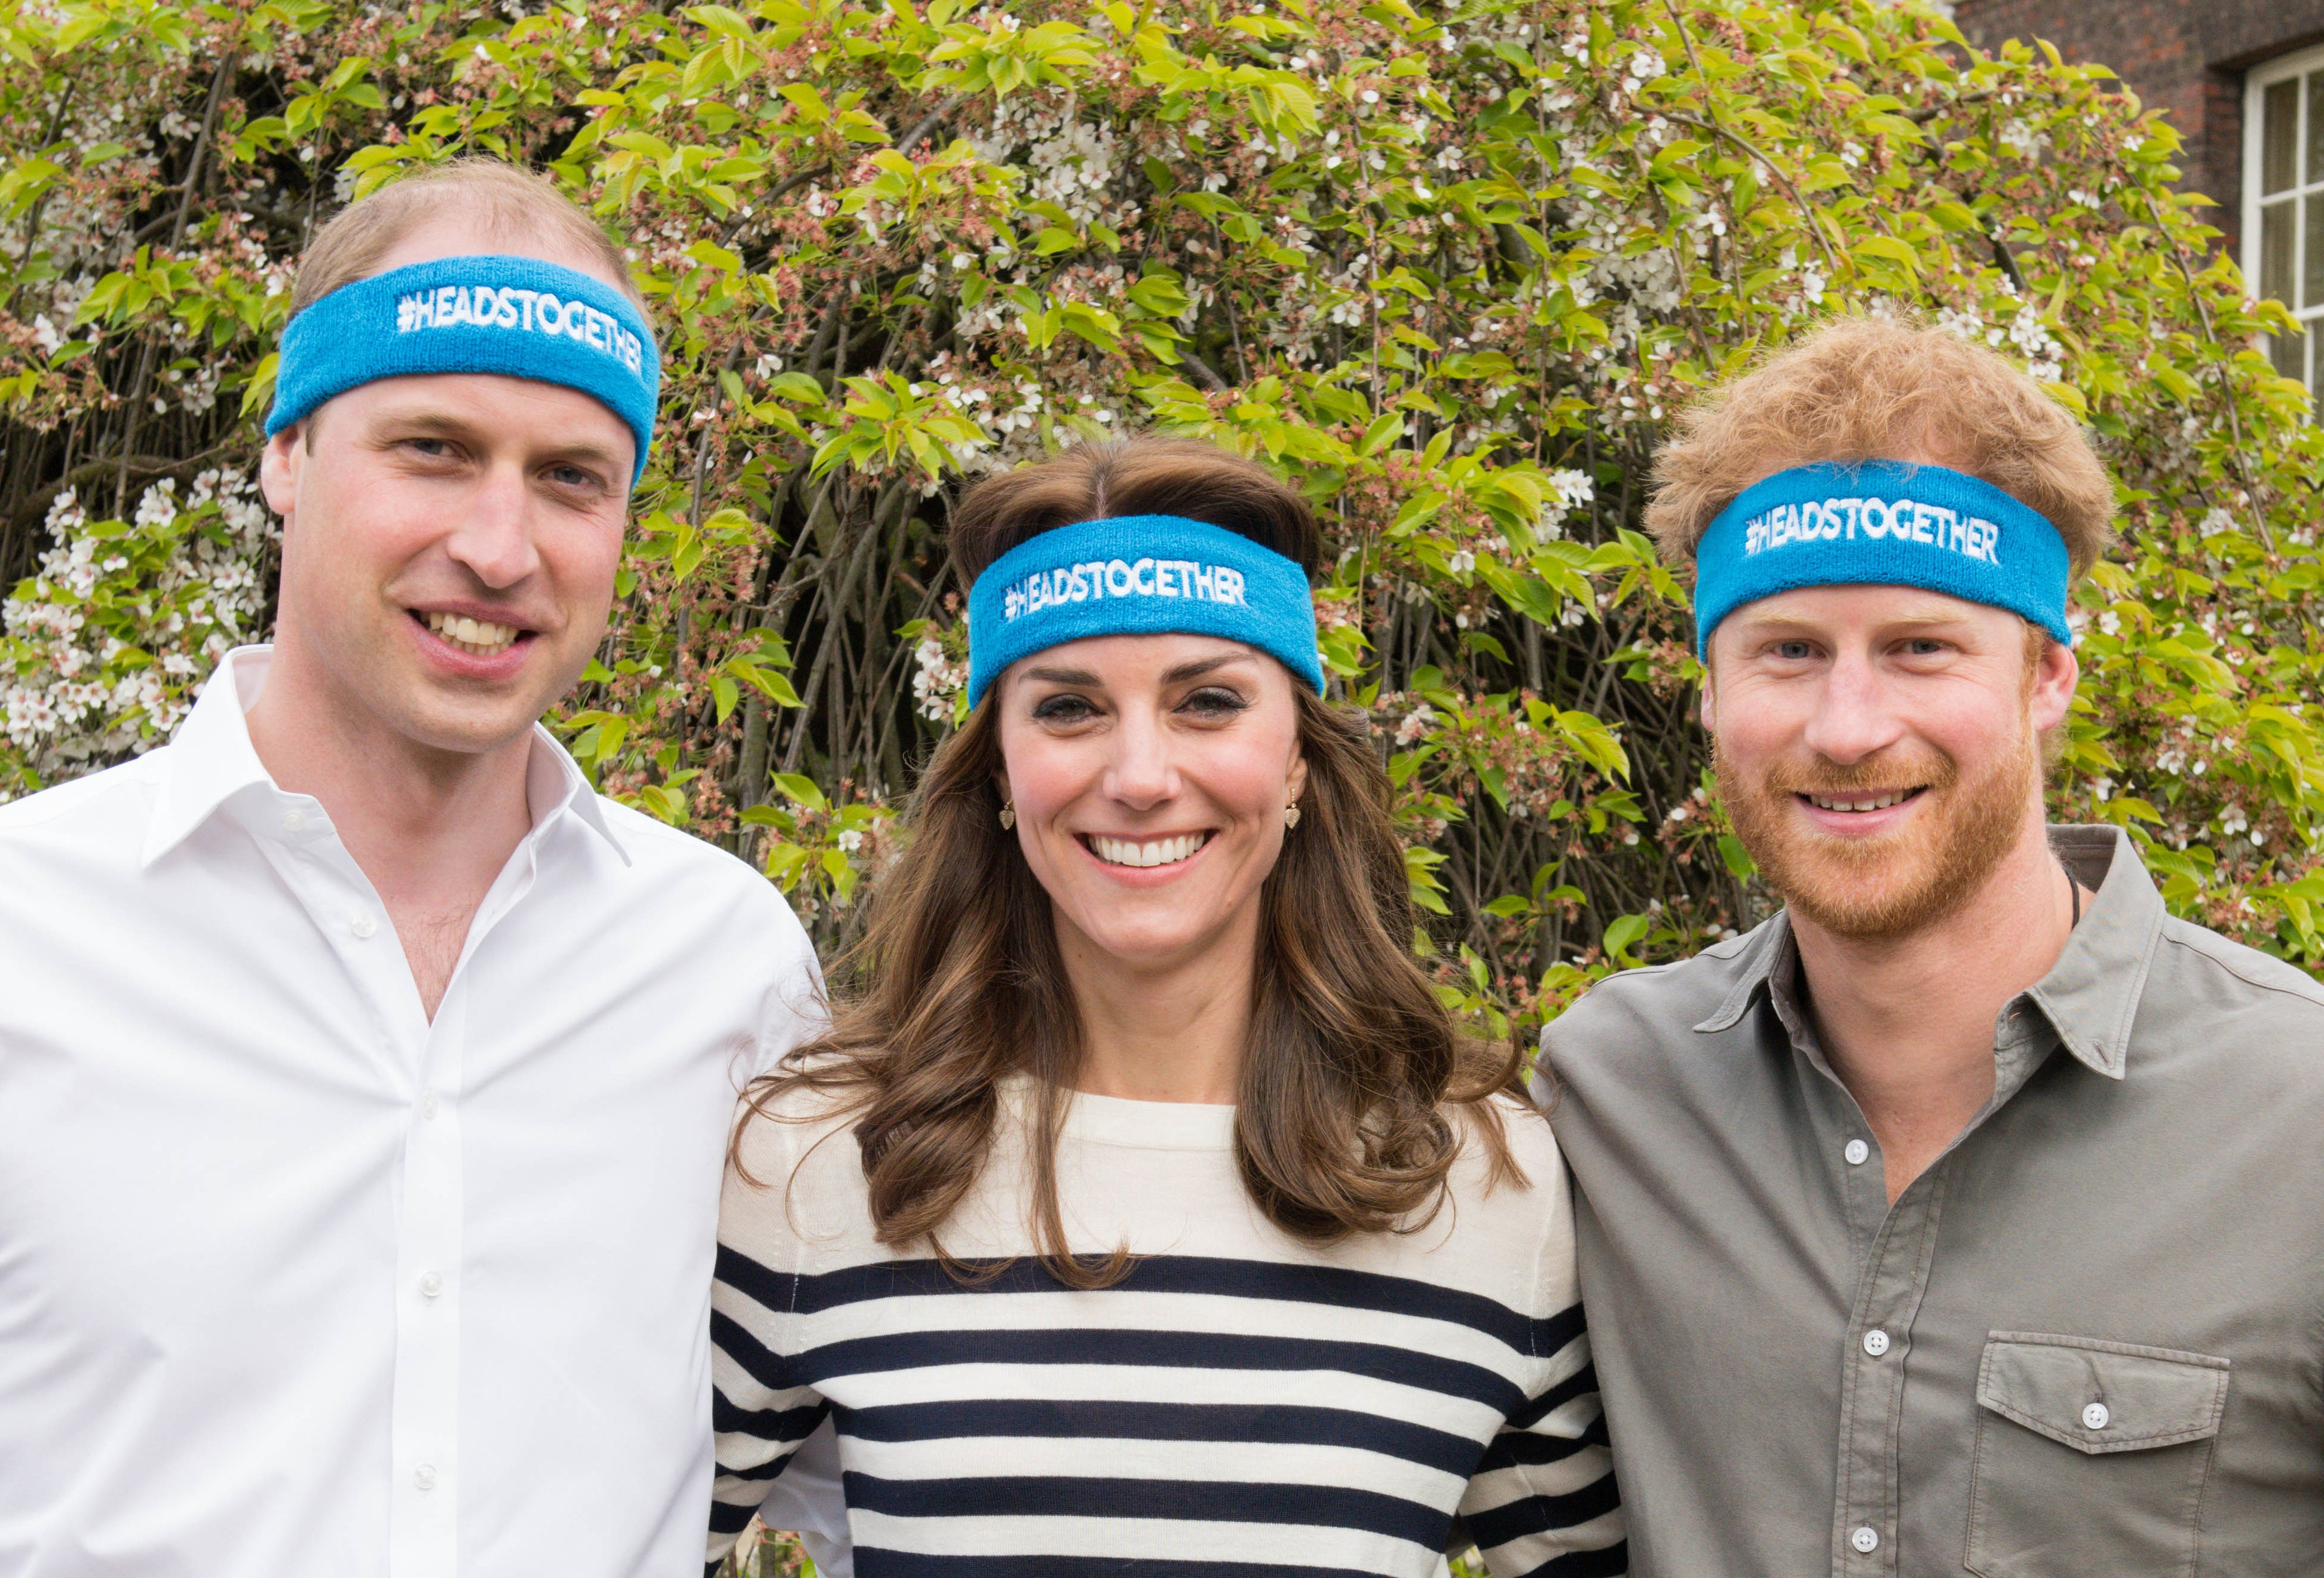 The Duke and Duchess of Cambridge and Prince Harry spearhead their Heads Together campaign at Kensington Palace on April 21, 2016 in London